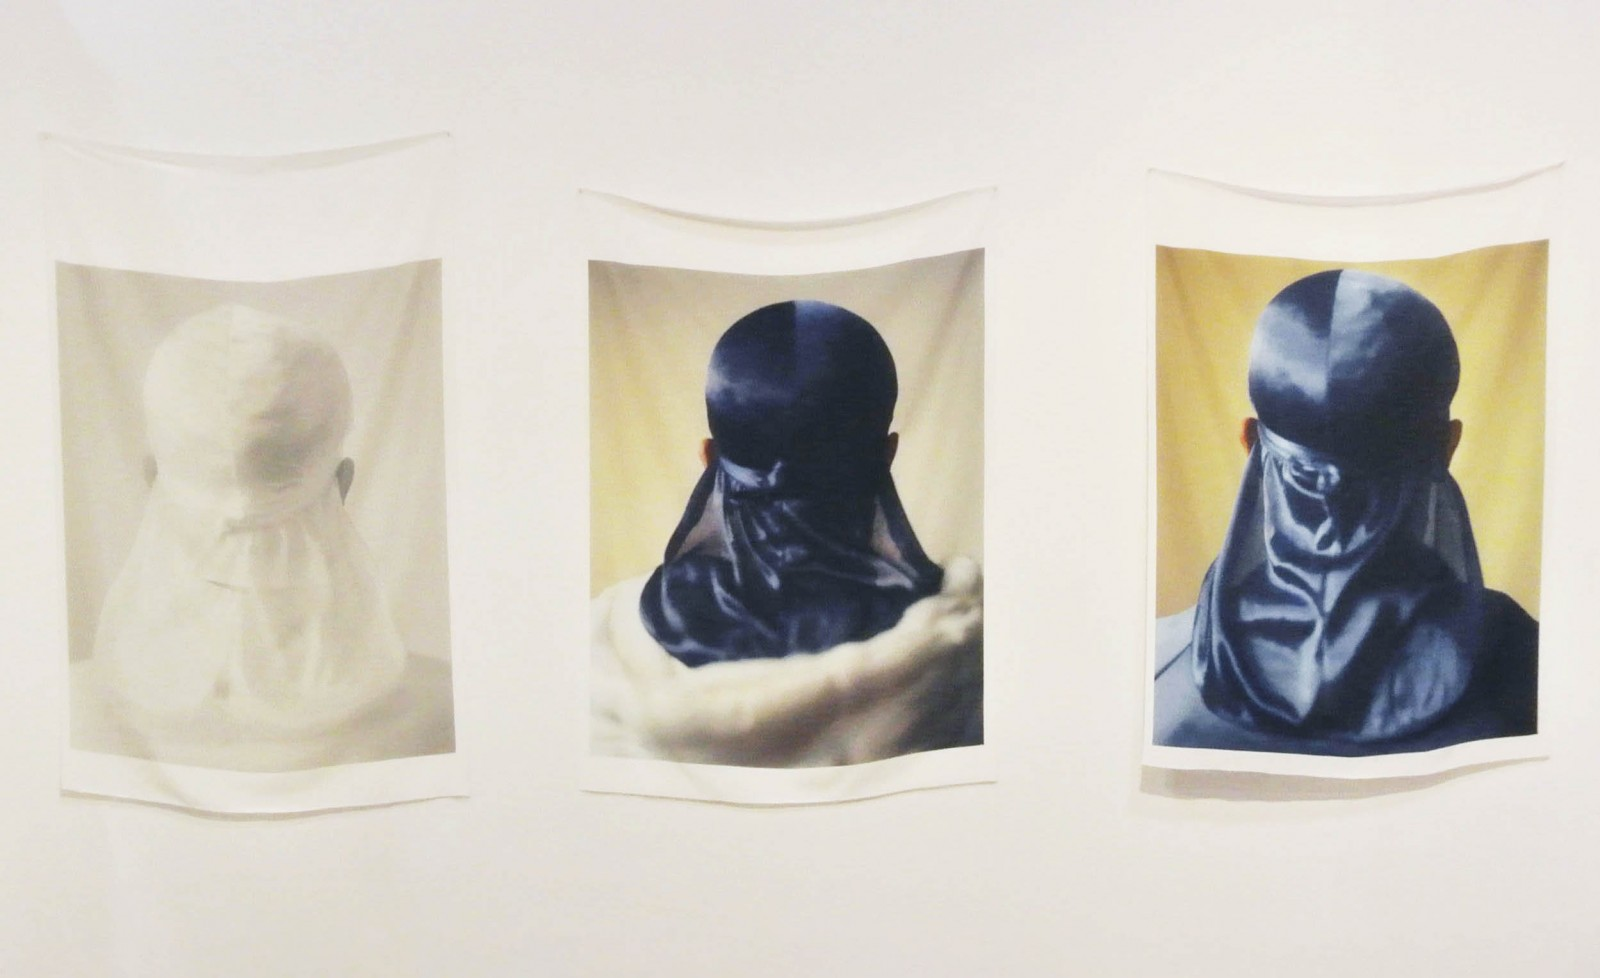 Image: John Edmonds, Untitled (Du-Rag 1), Untitled (Du-Rag 2), and Untitled (Du-Rag 3), 2017. Archival pigment print on Japanese silkl, 50 x 40 inches each. Courtesy of ltd los angeles. Acquired by the Art Gallery of Ontario.